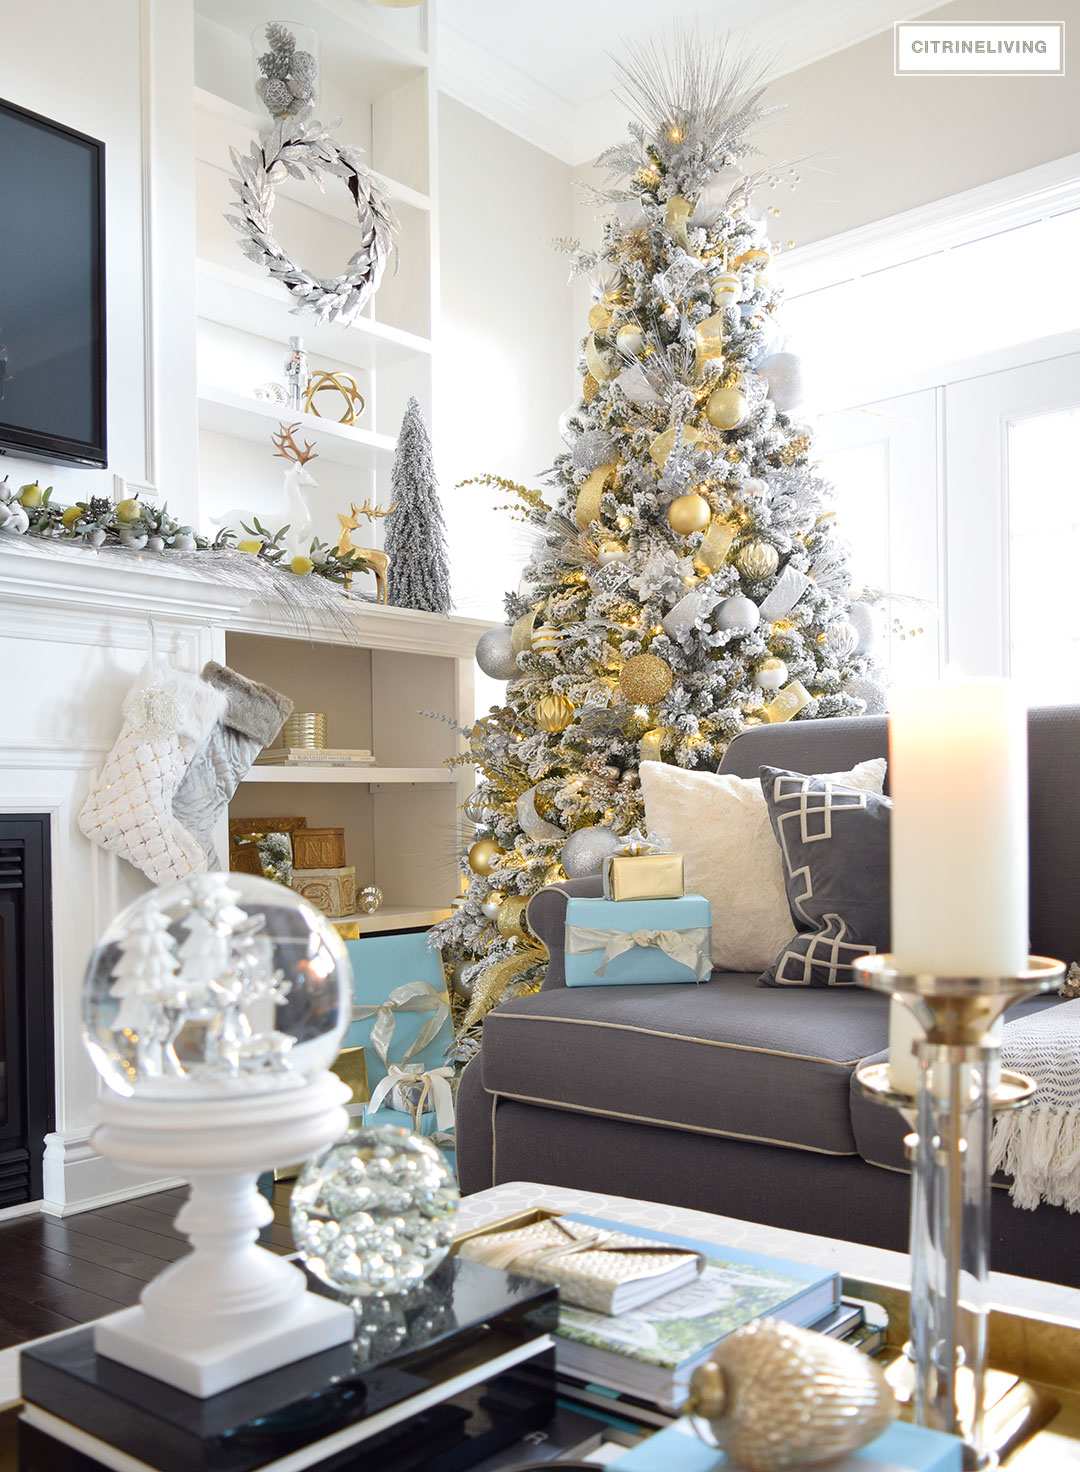 Christmas Home Tour - Stunning flocked Christmas tree with beautiful metallics and icy blue create a chic Holiday theme